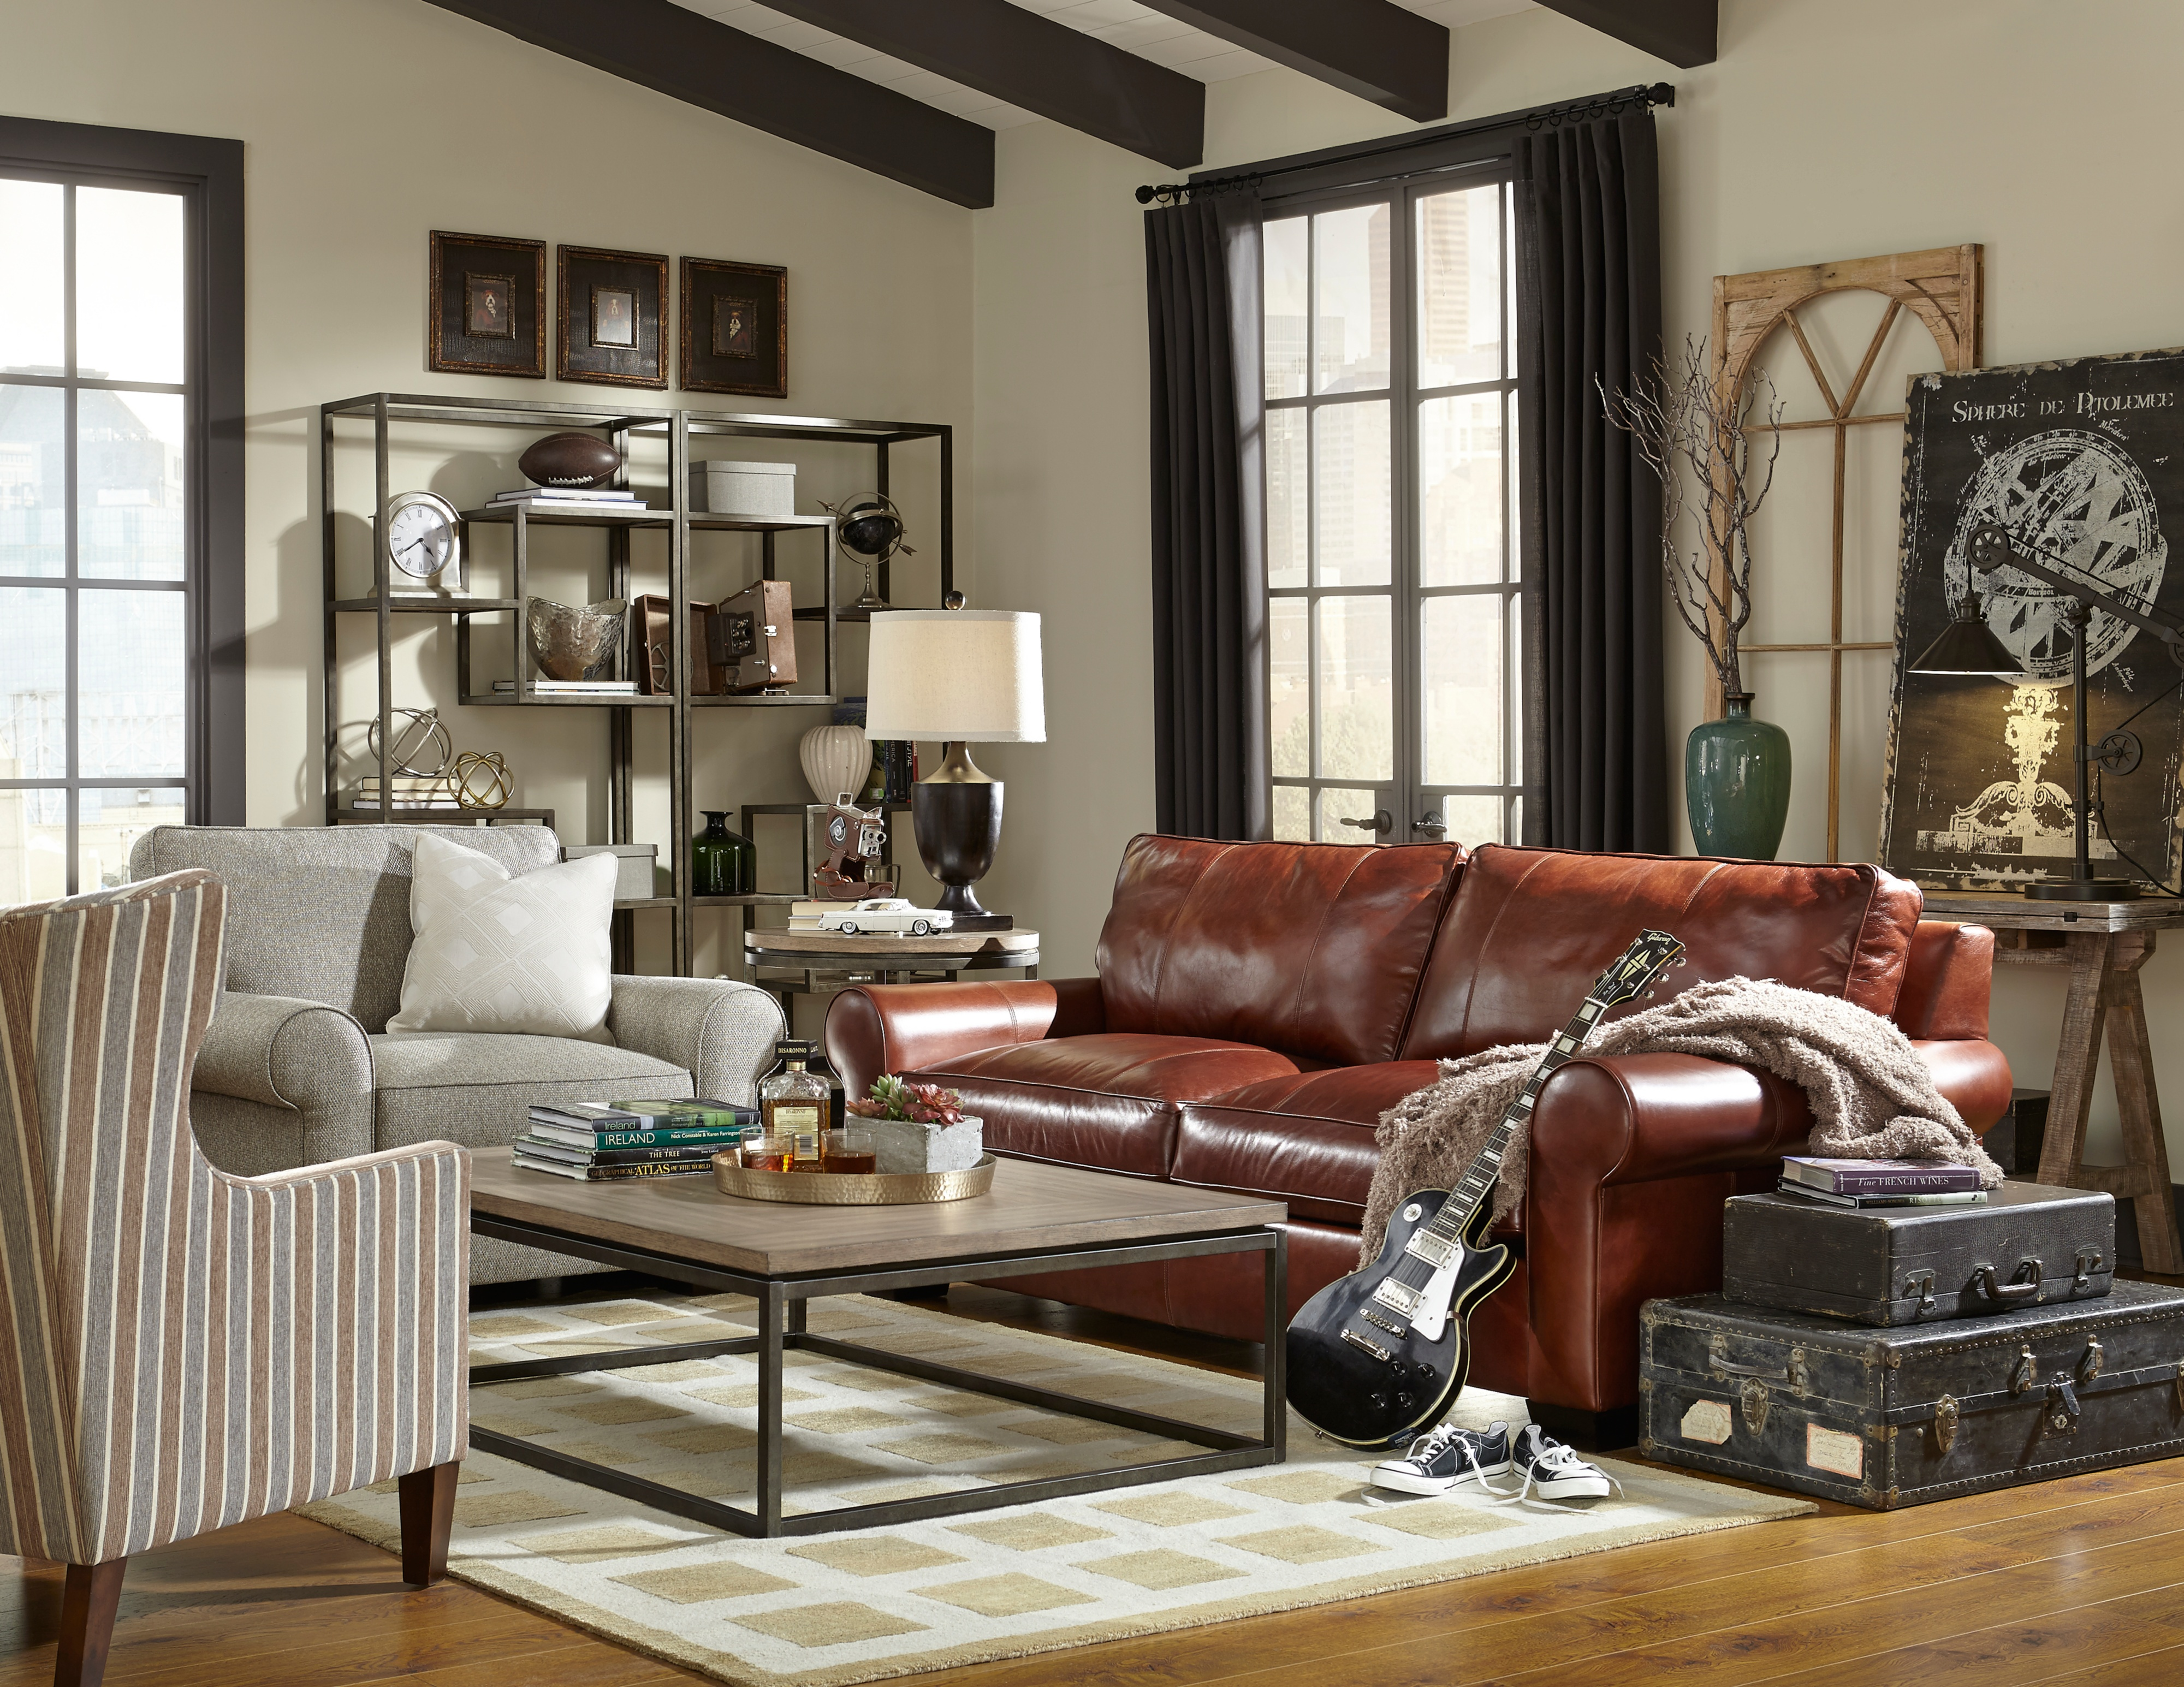 Fabulous Isadore 4272 Sofa Collection Customize 350 Sofas And Alphanode Cool Chair Designs And Ideas Alphanodeonline